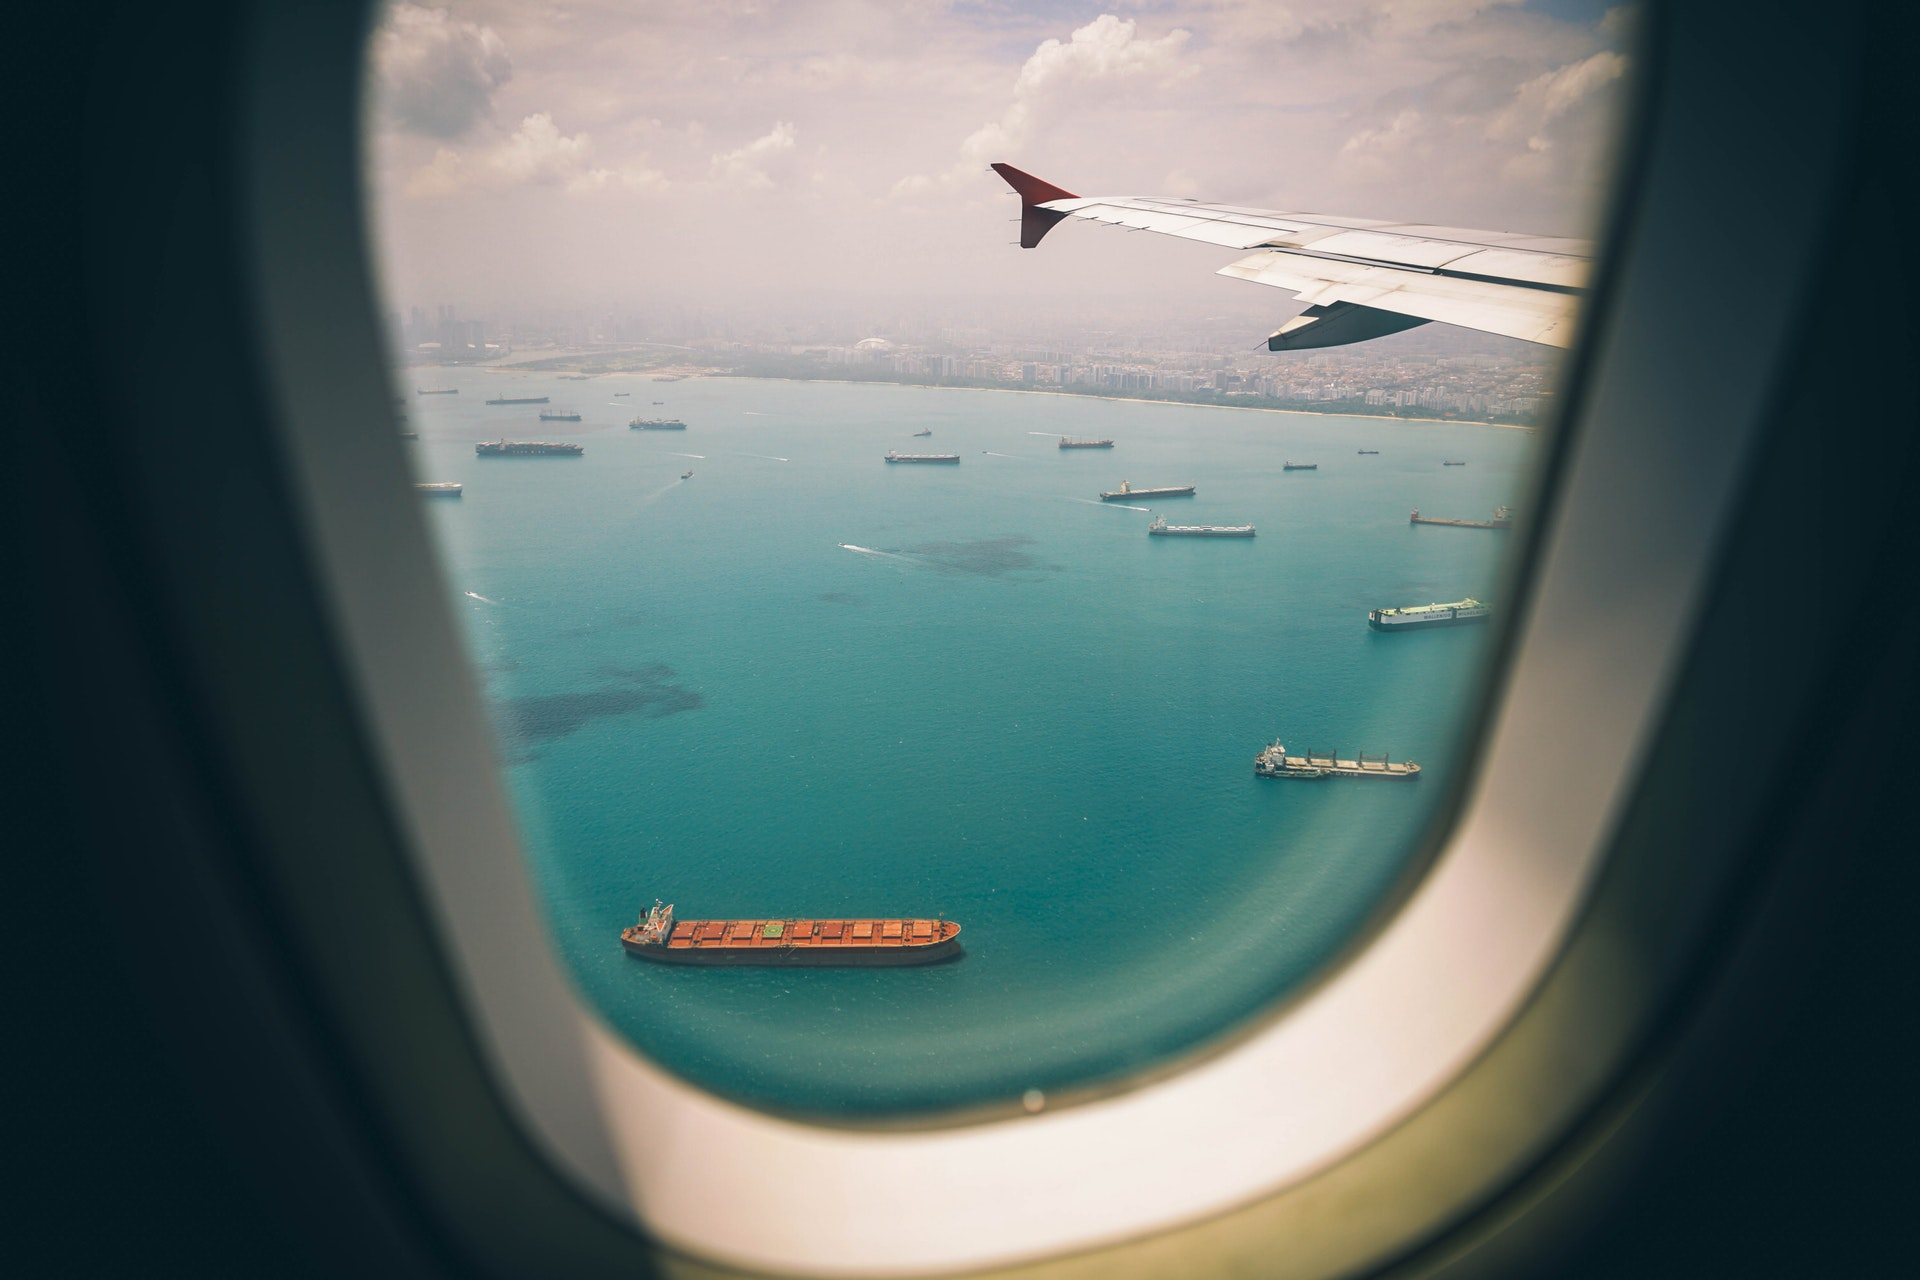 Plane and ships